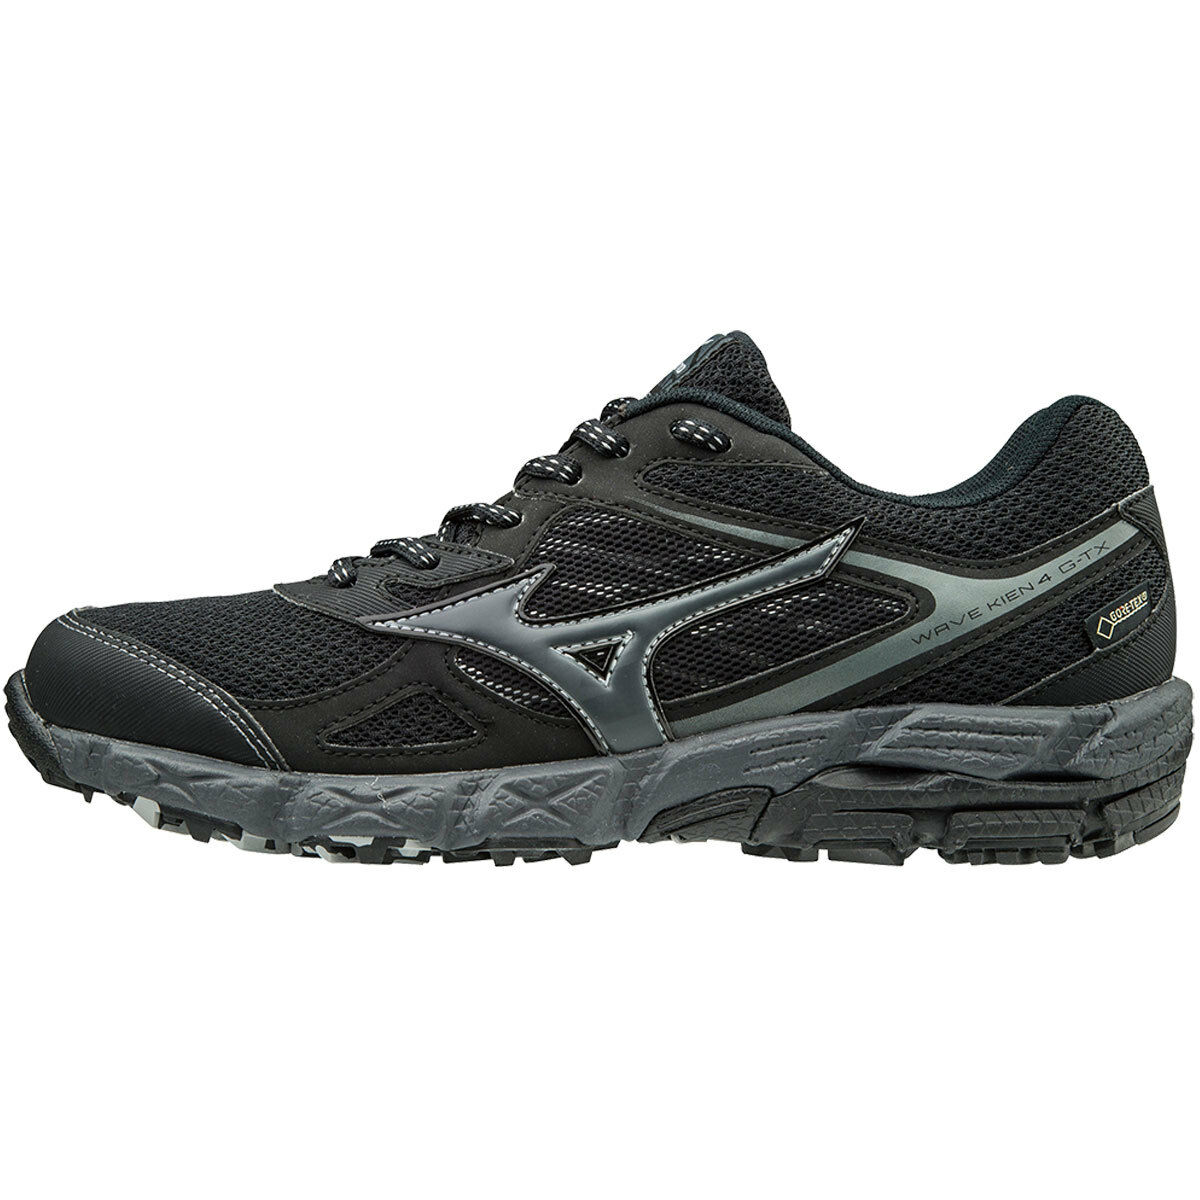 Mizuno Wave Kien 4 GTX Lady   J1GK175951   Trailrunning oder Walking